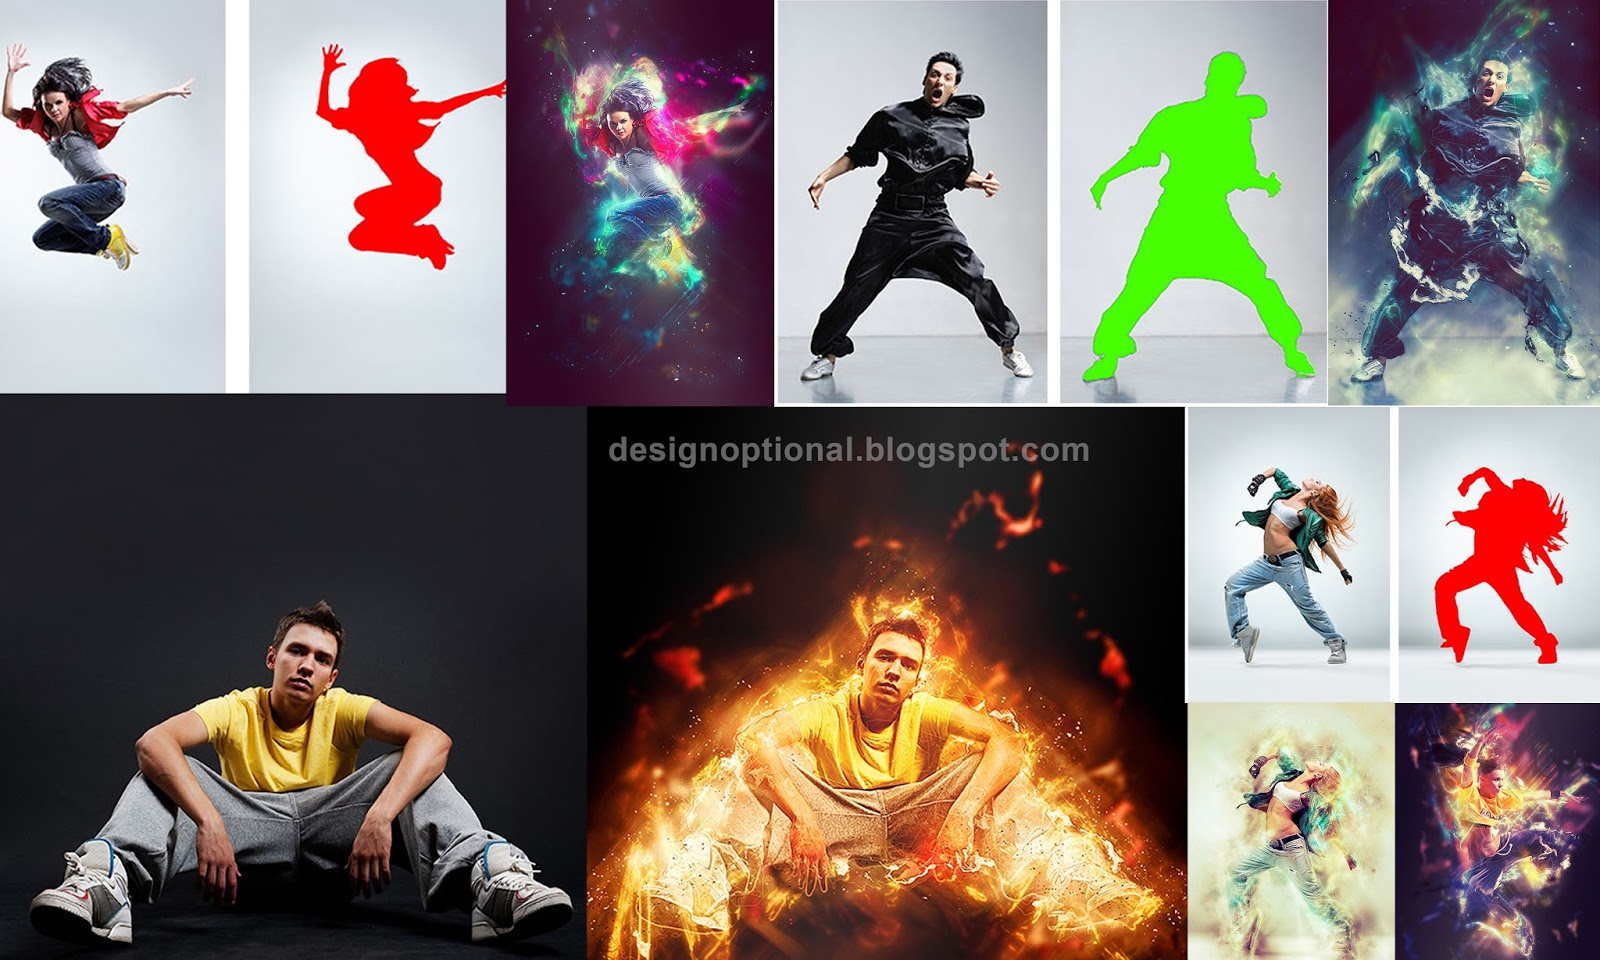 60 Super Photoshop actions free download By DG photoshop